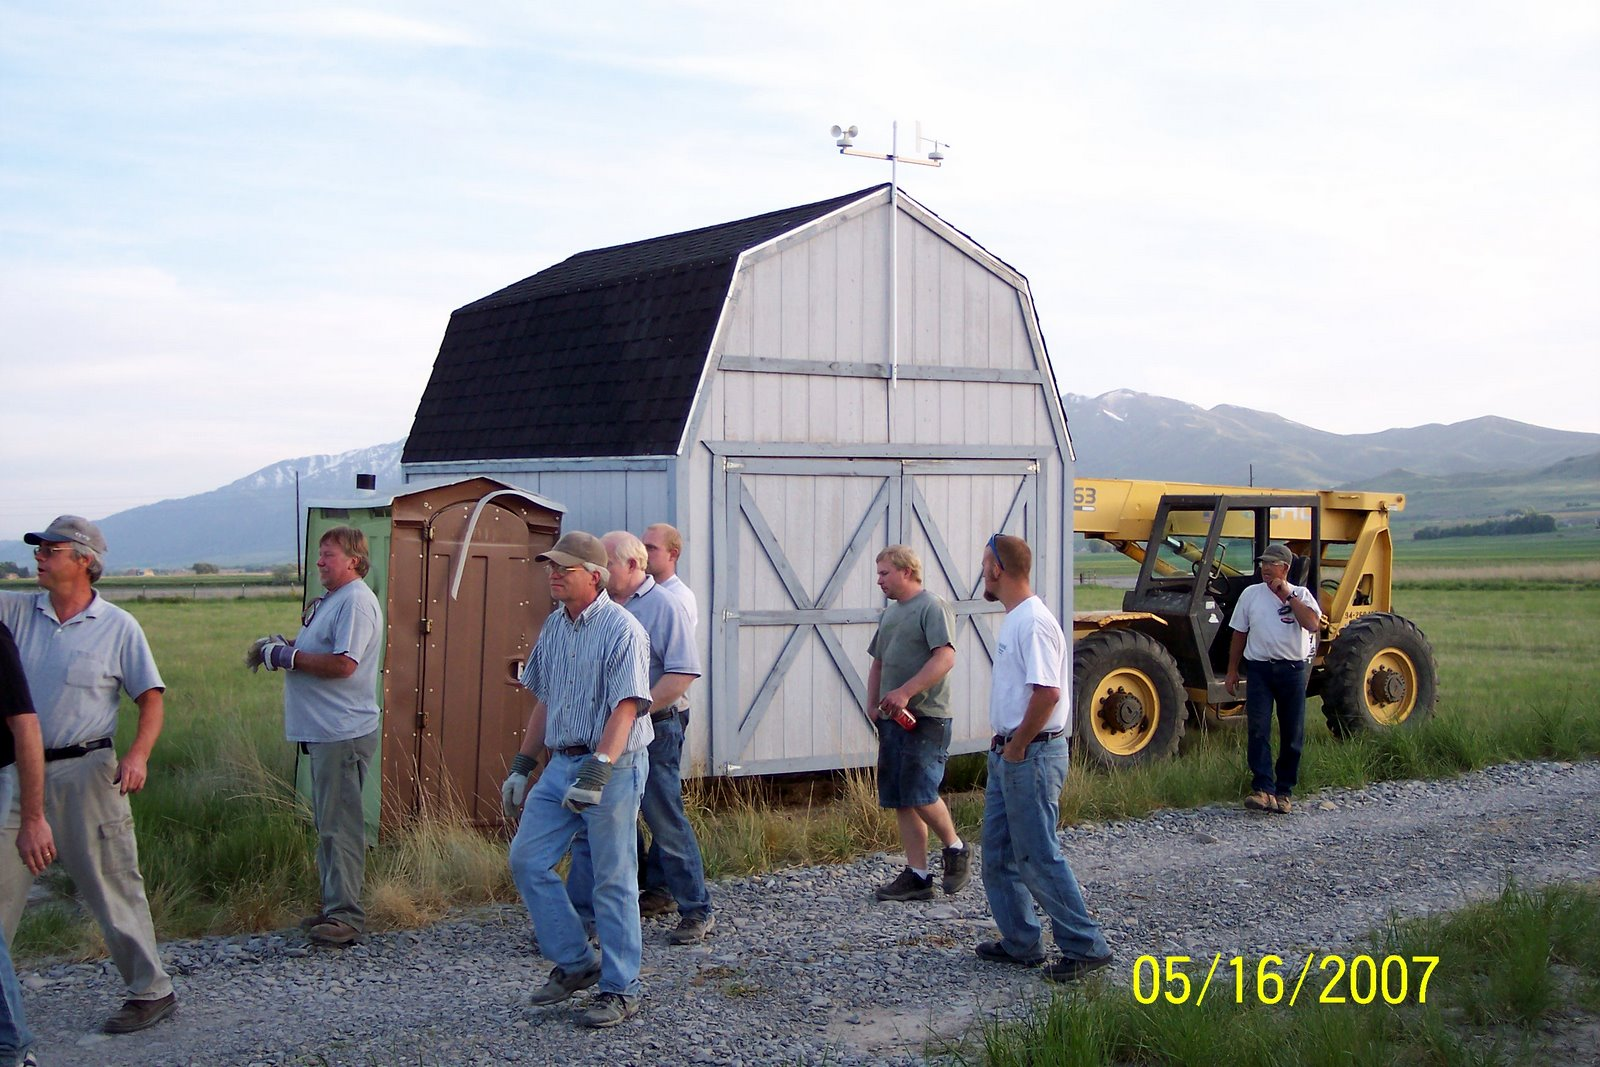 SHED IS HOISTED AND READY TO BE MOVED.